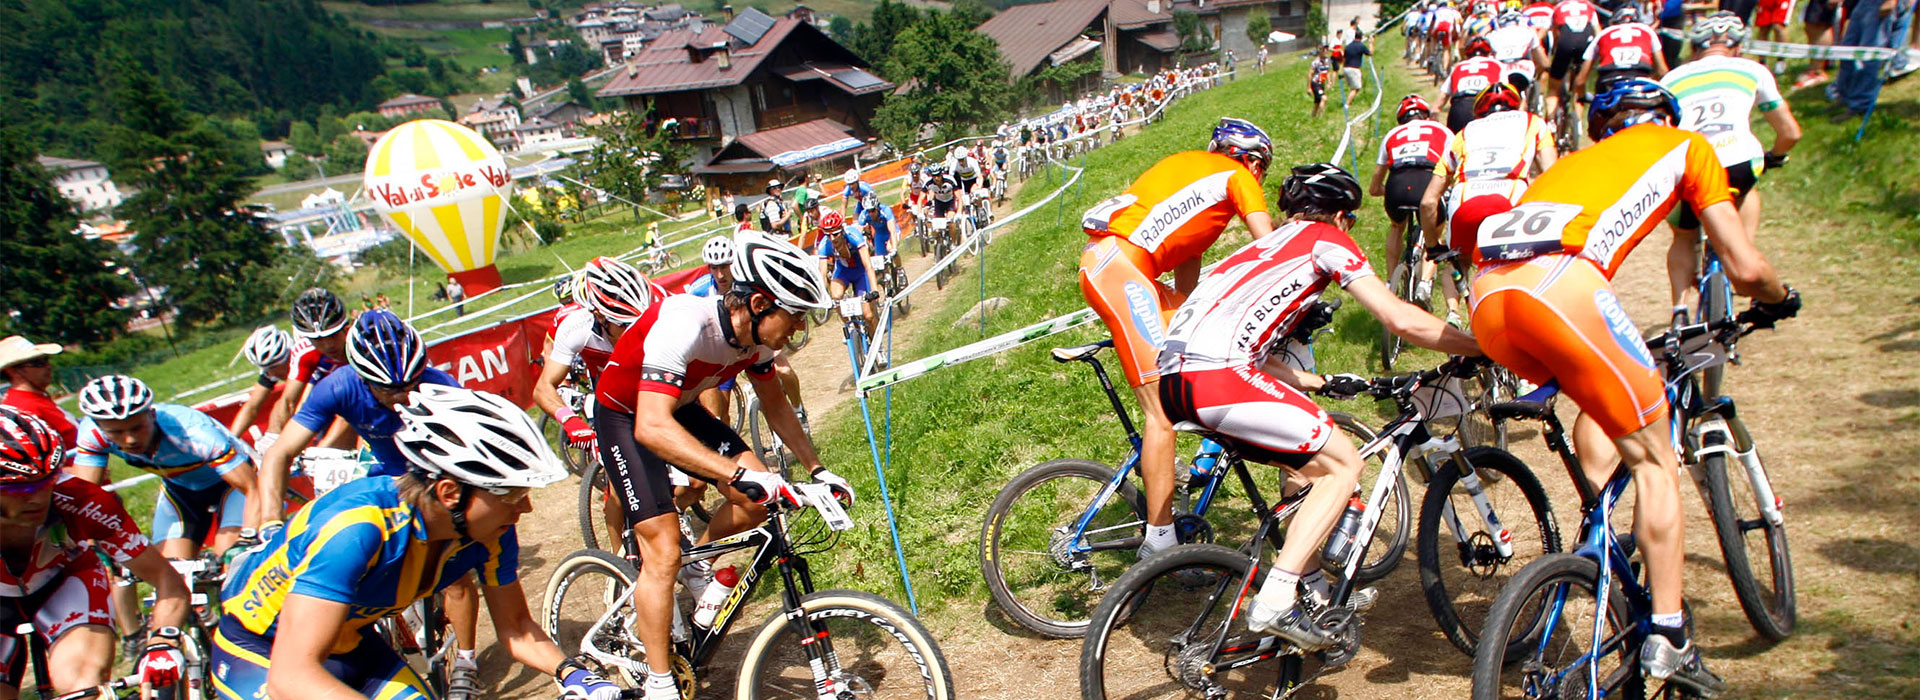 2016-sistime-mountain-bike-xc